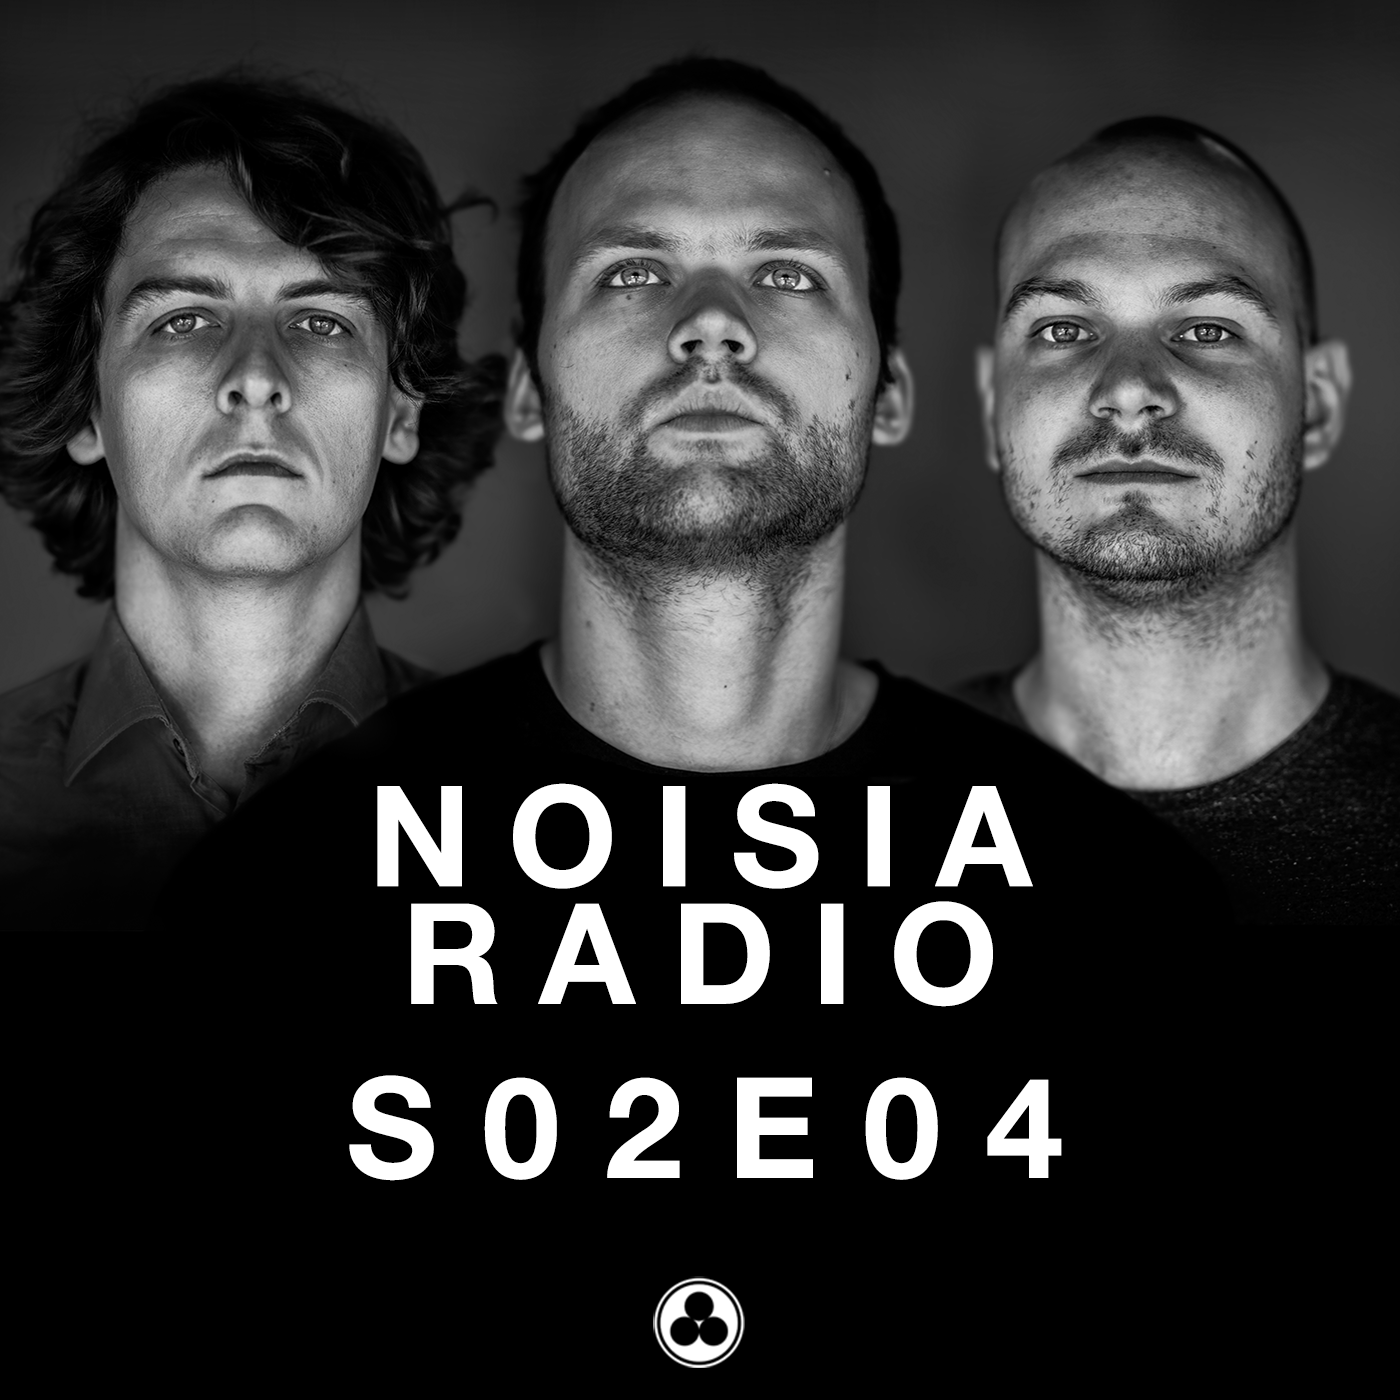 Noisia Radio S02E04